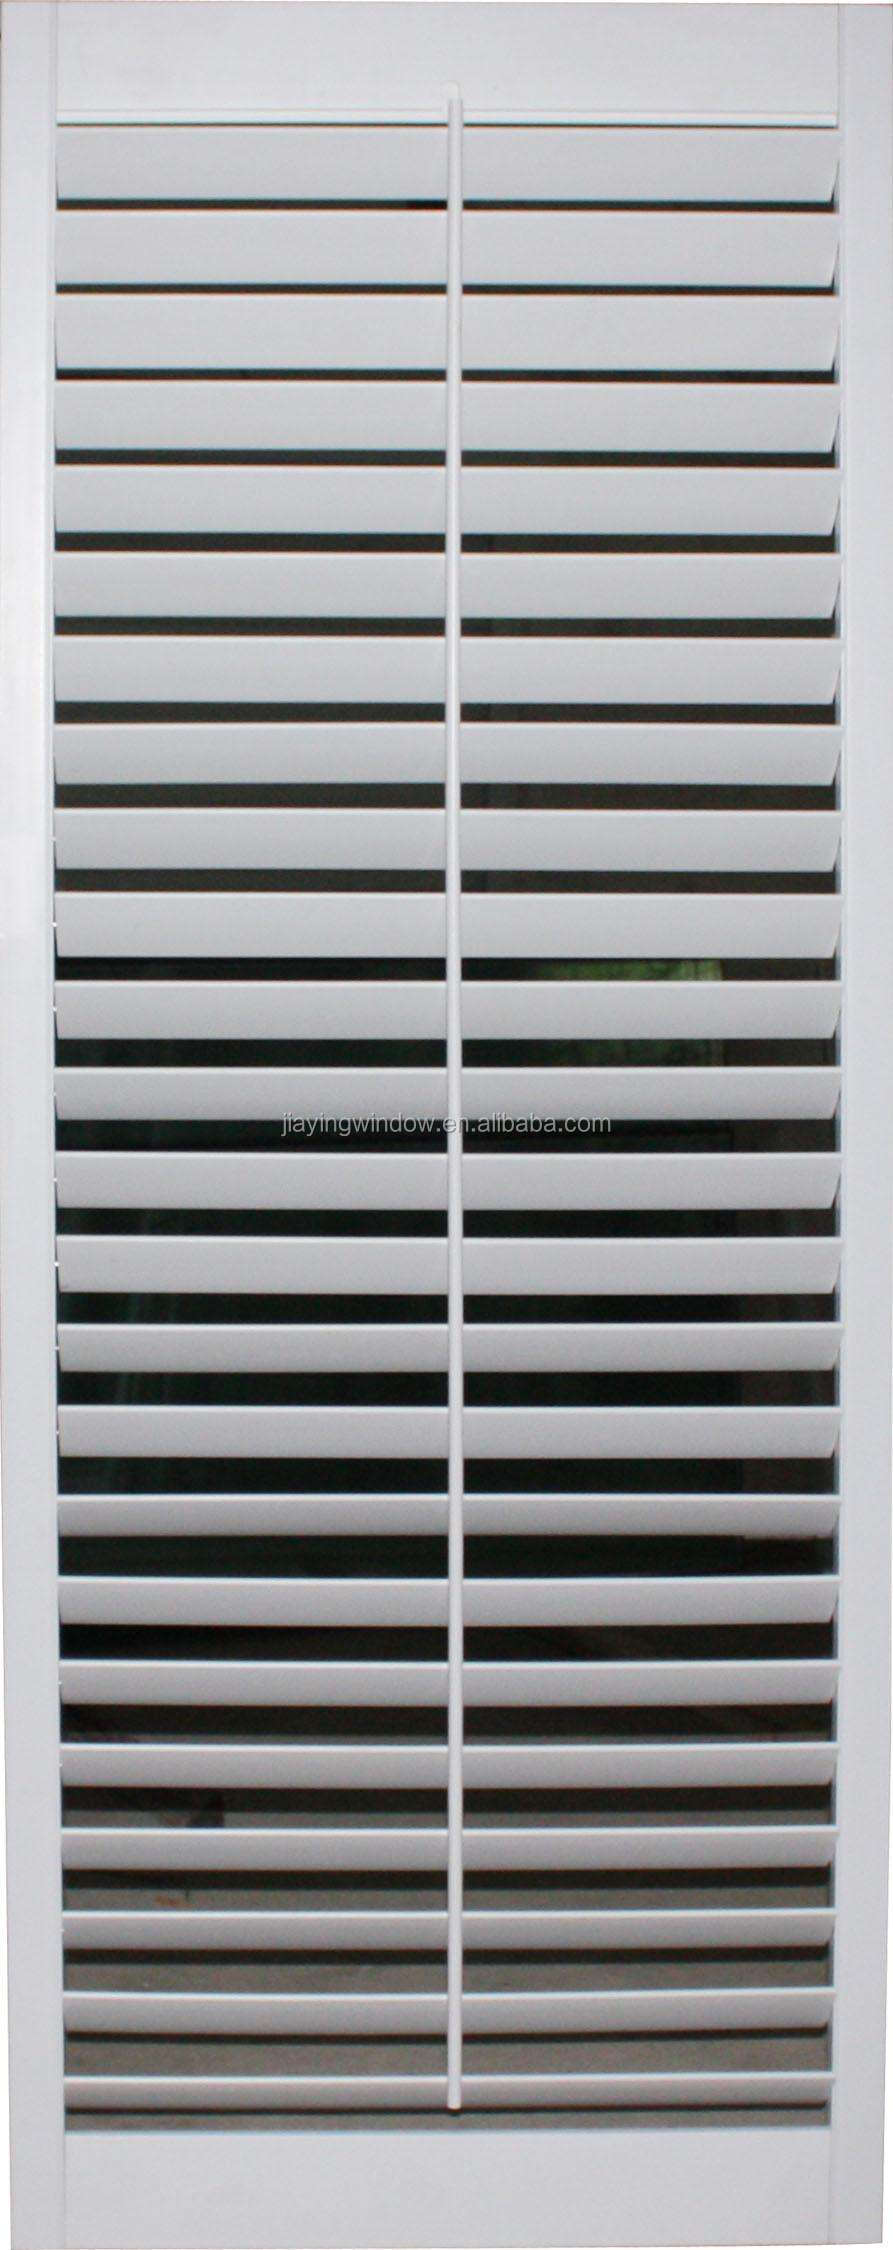 Wind Resistance Wooden Color Fireproof Window Shutters With Good Air Tight Buy Aluminum Window With Shutter Aluminum Window With Shutter Aluminum